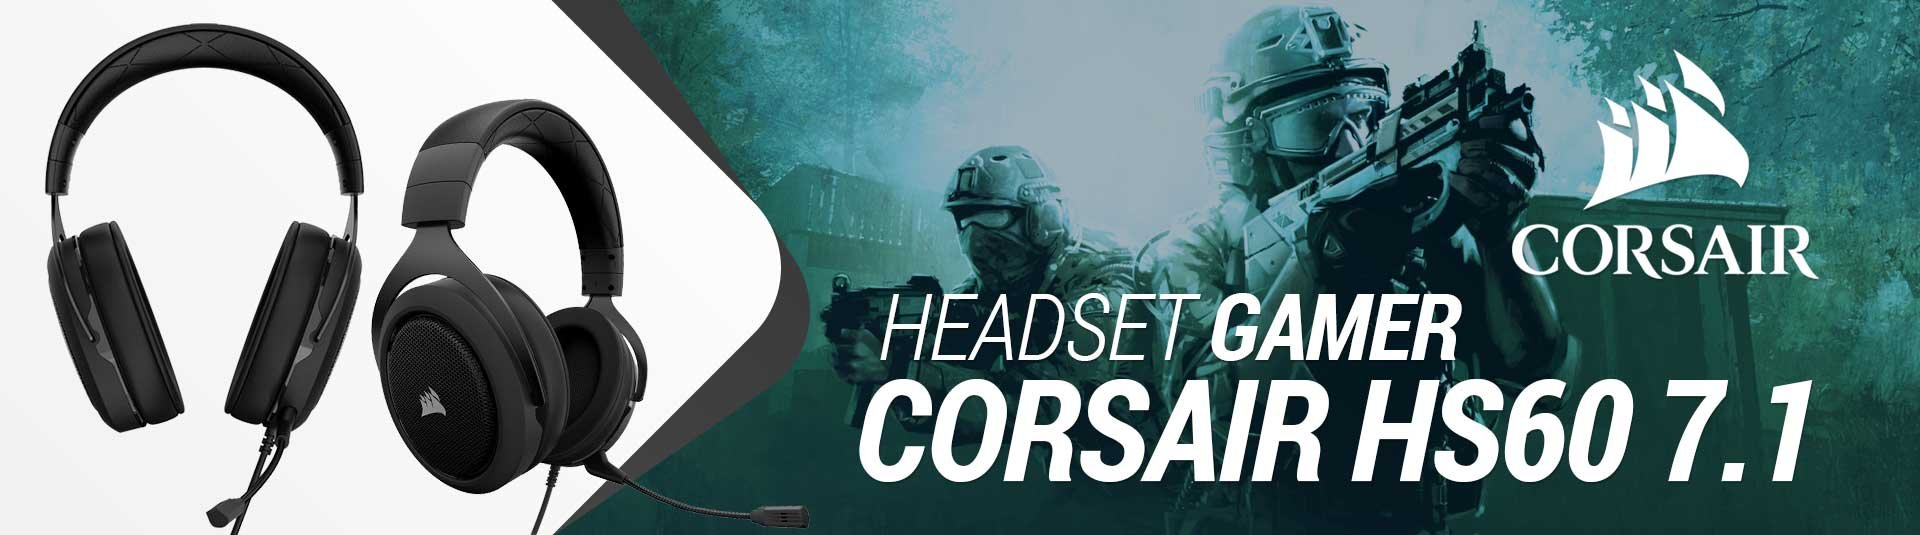 Headset Gamer Corsair HS60 7.1